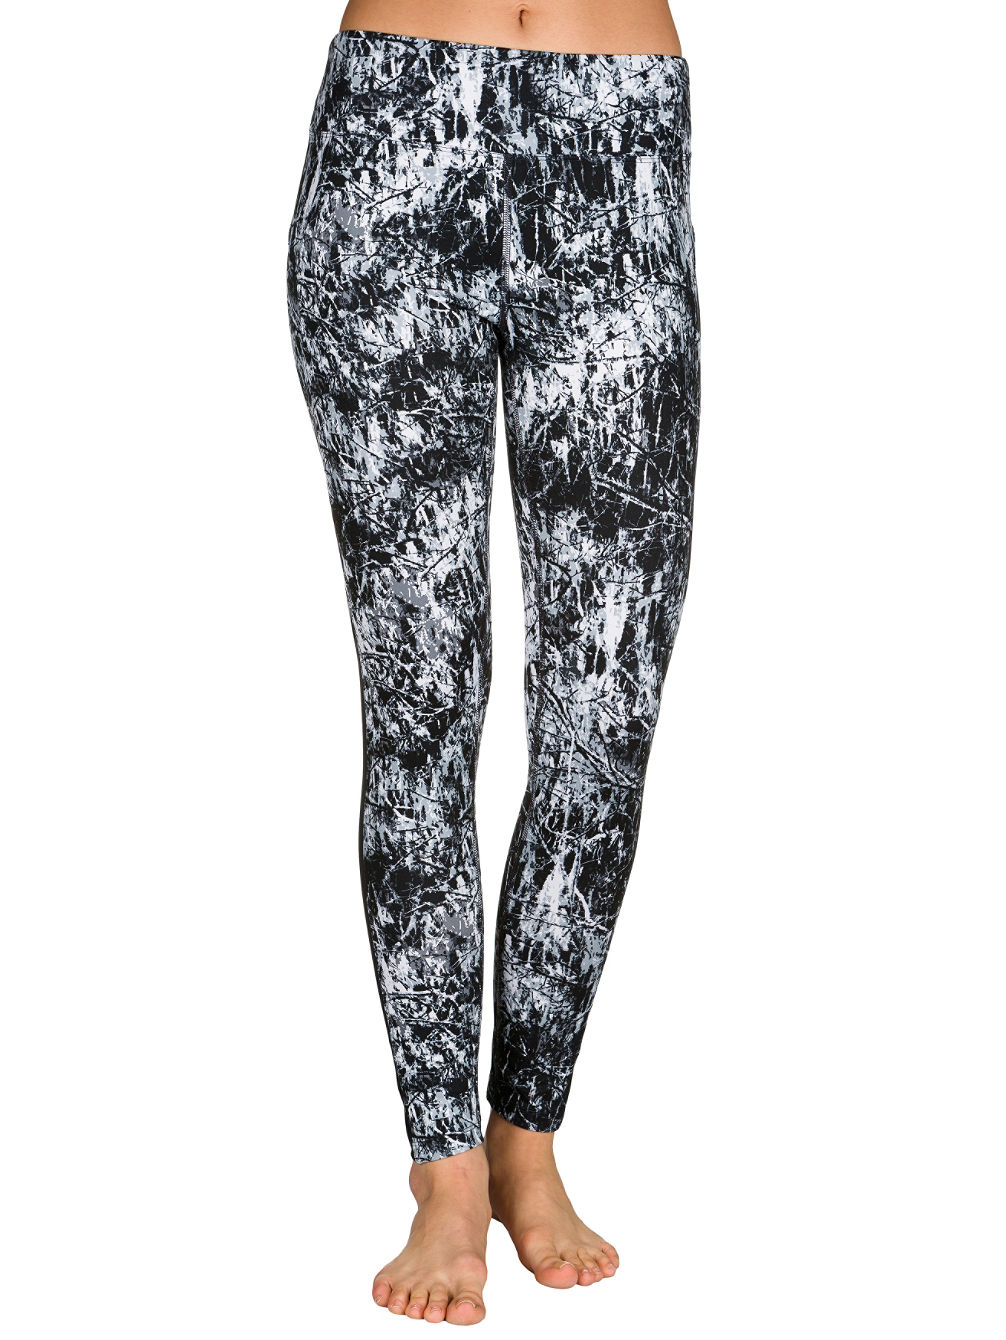 Jordan Agility Legging Tech Pants